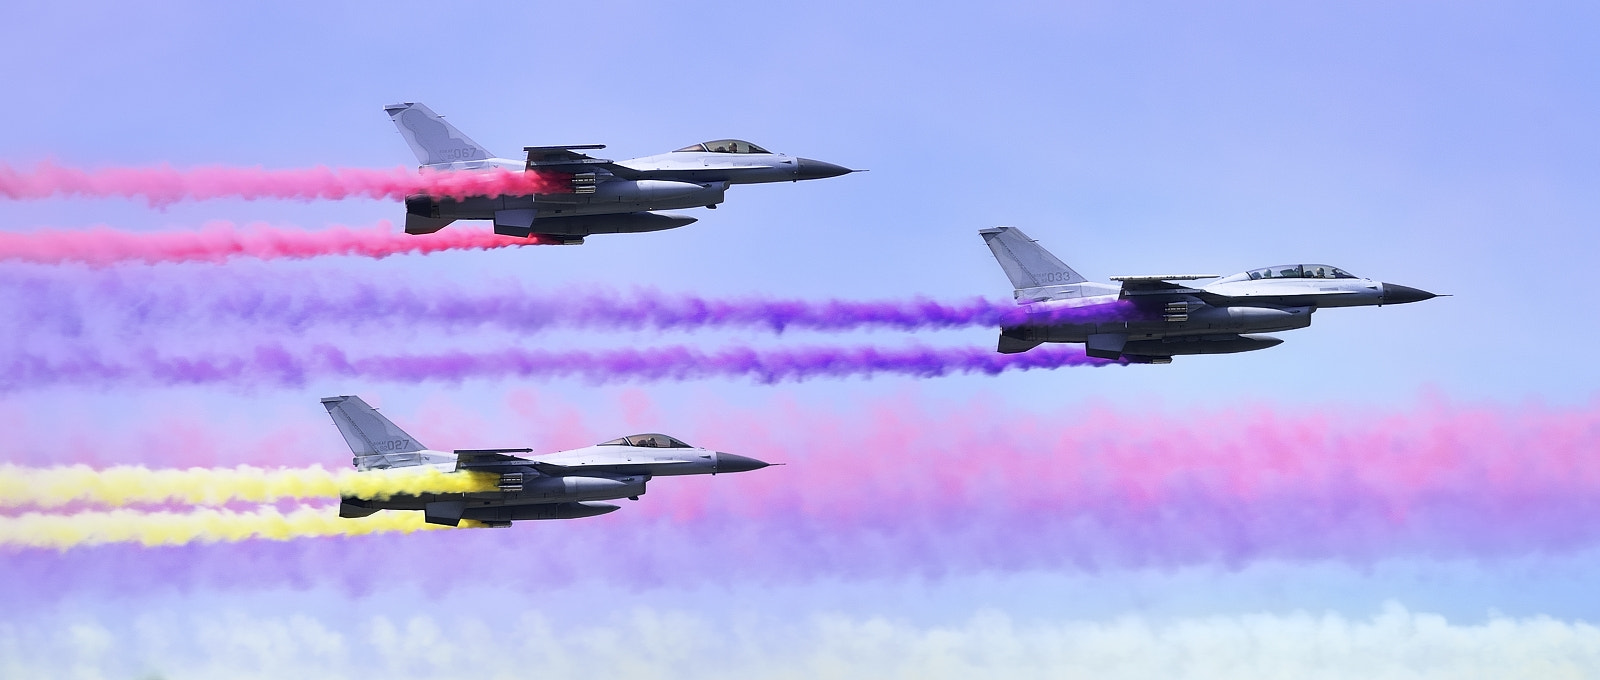 Photograph F-16 Falcon by HoHyun Lee on 500px